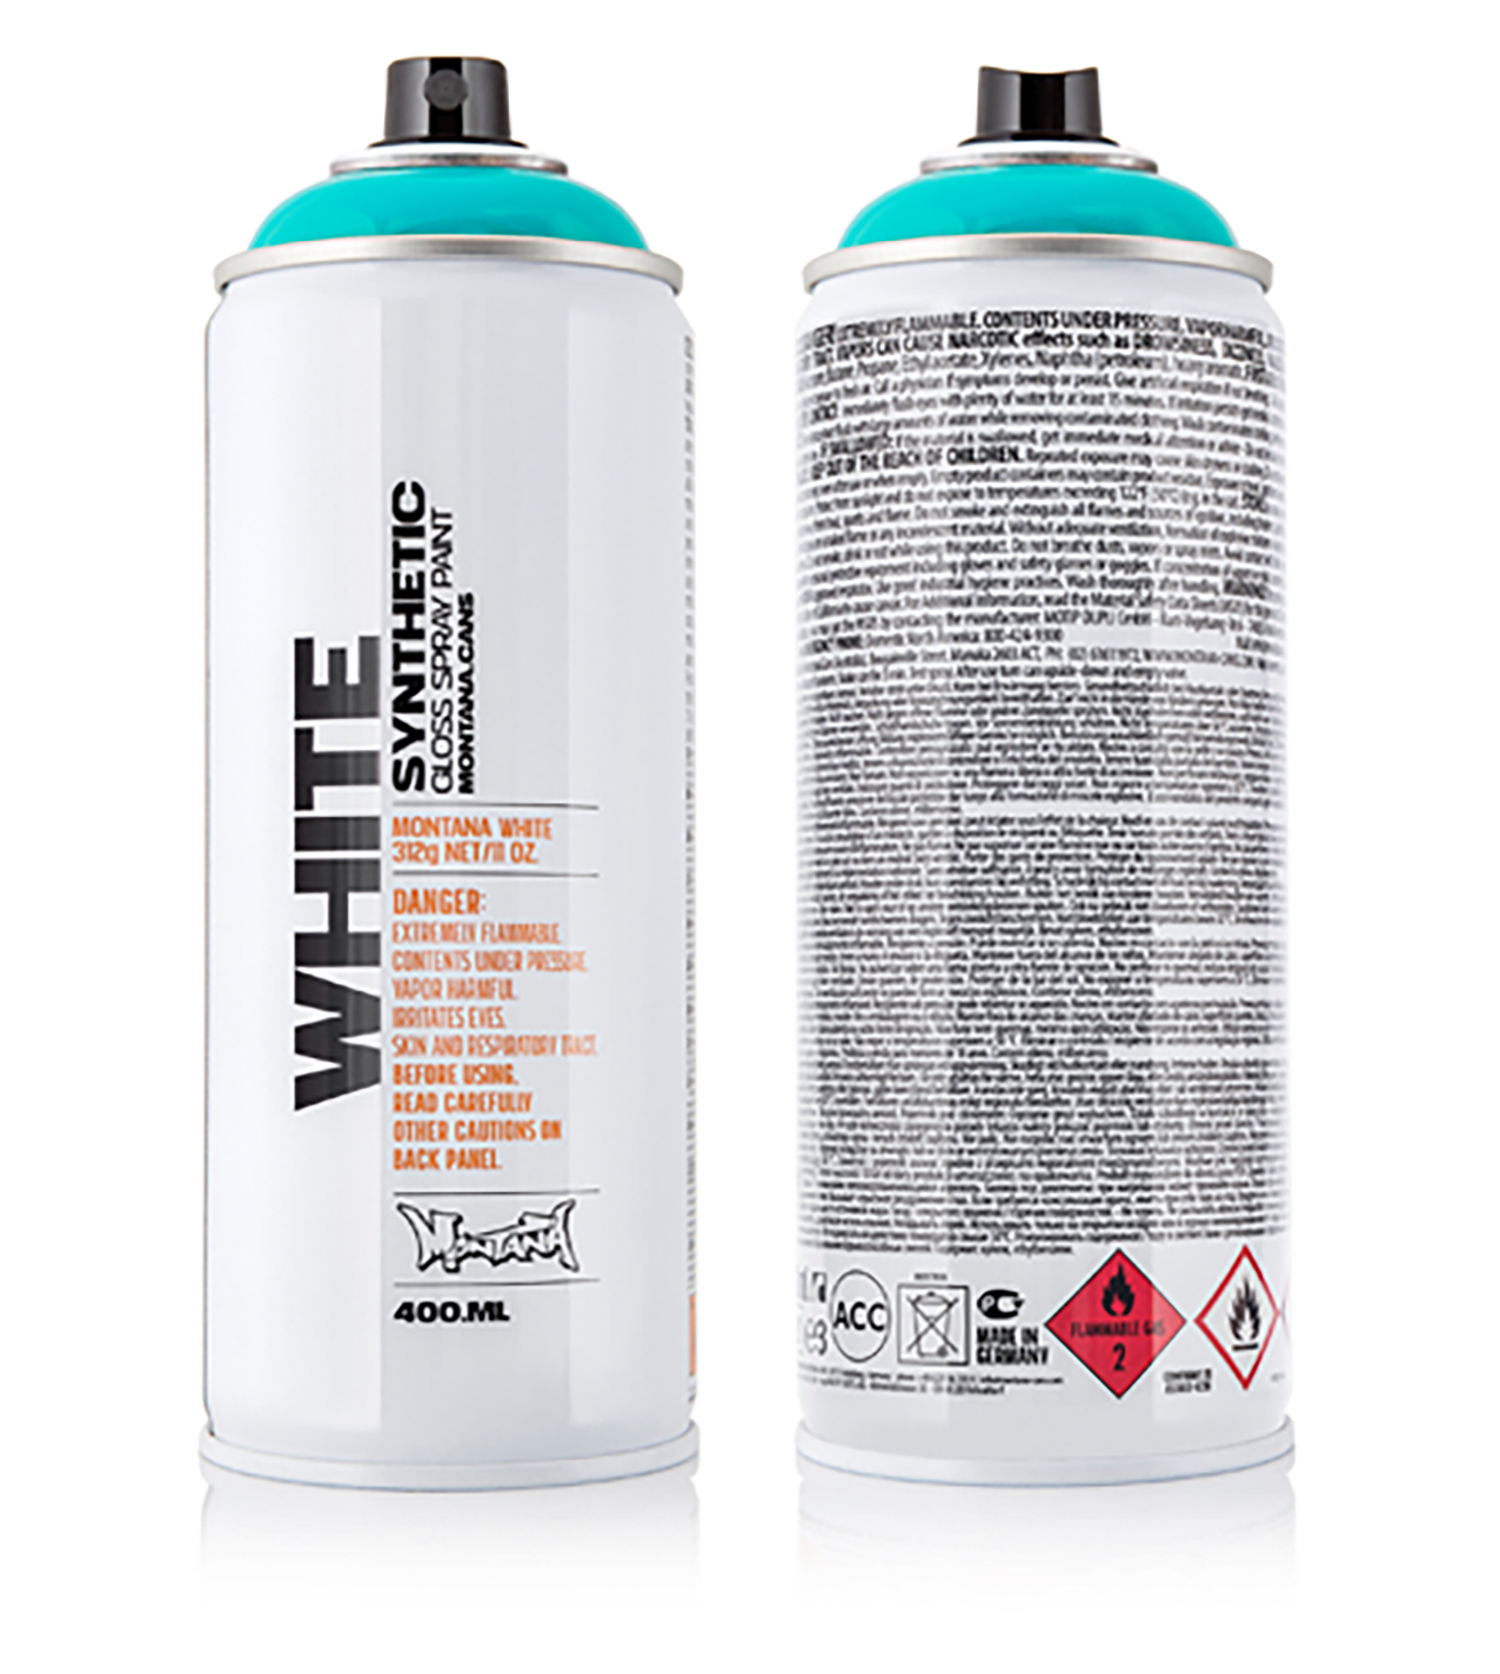 MONTANA-WHITE-SPRAY-400ML-6340